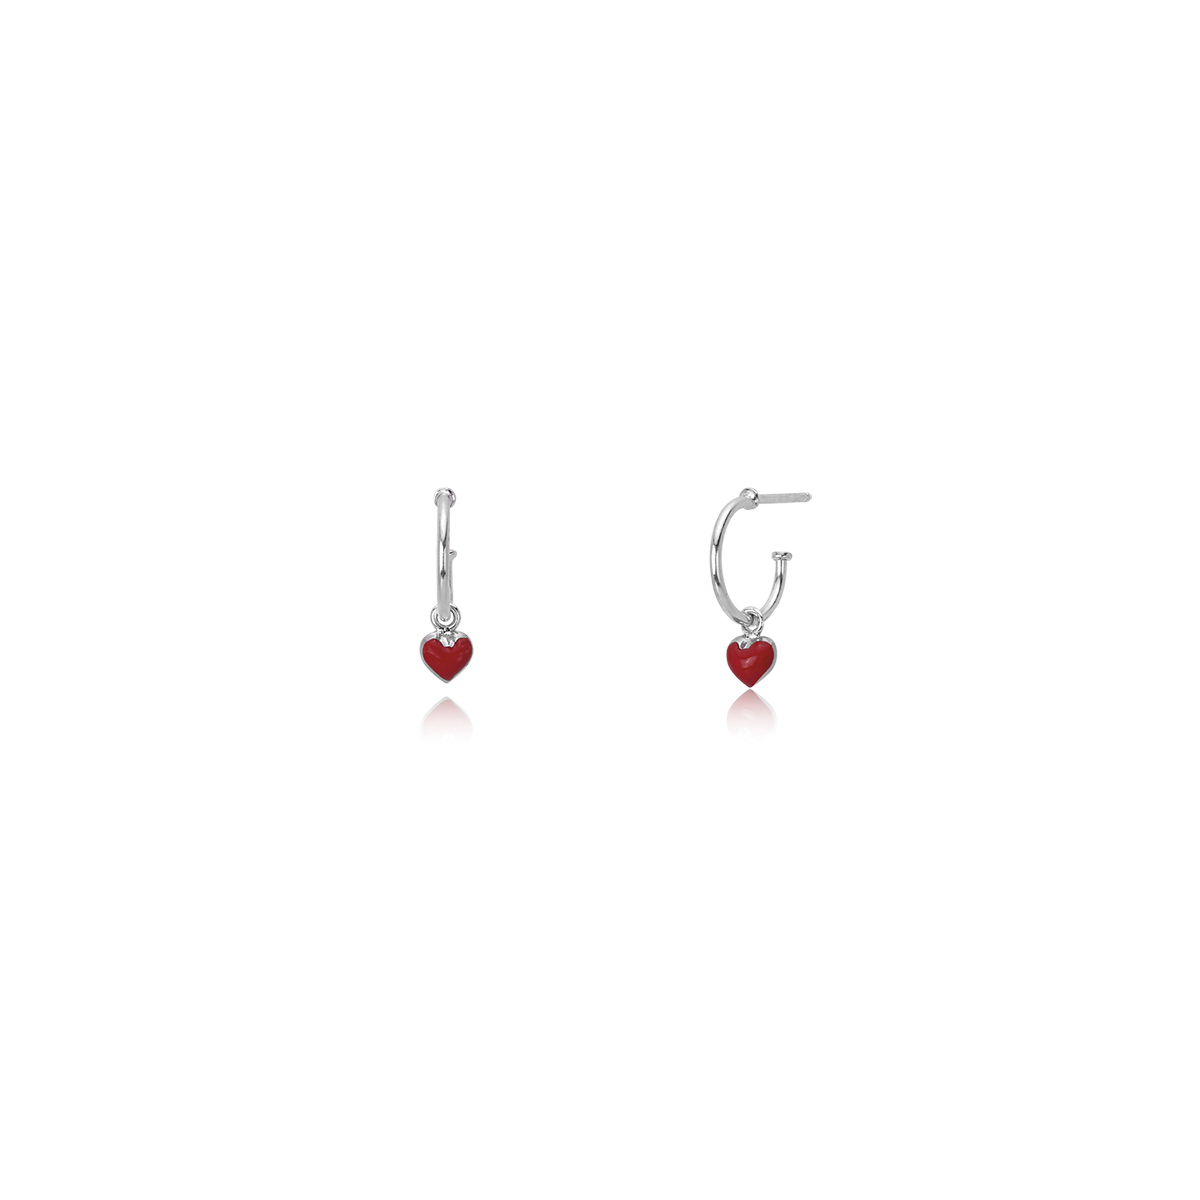 Mabina new collection 563345 orecchini argento e smalto